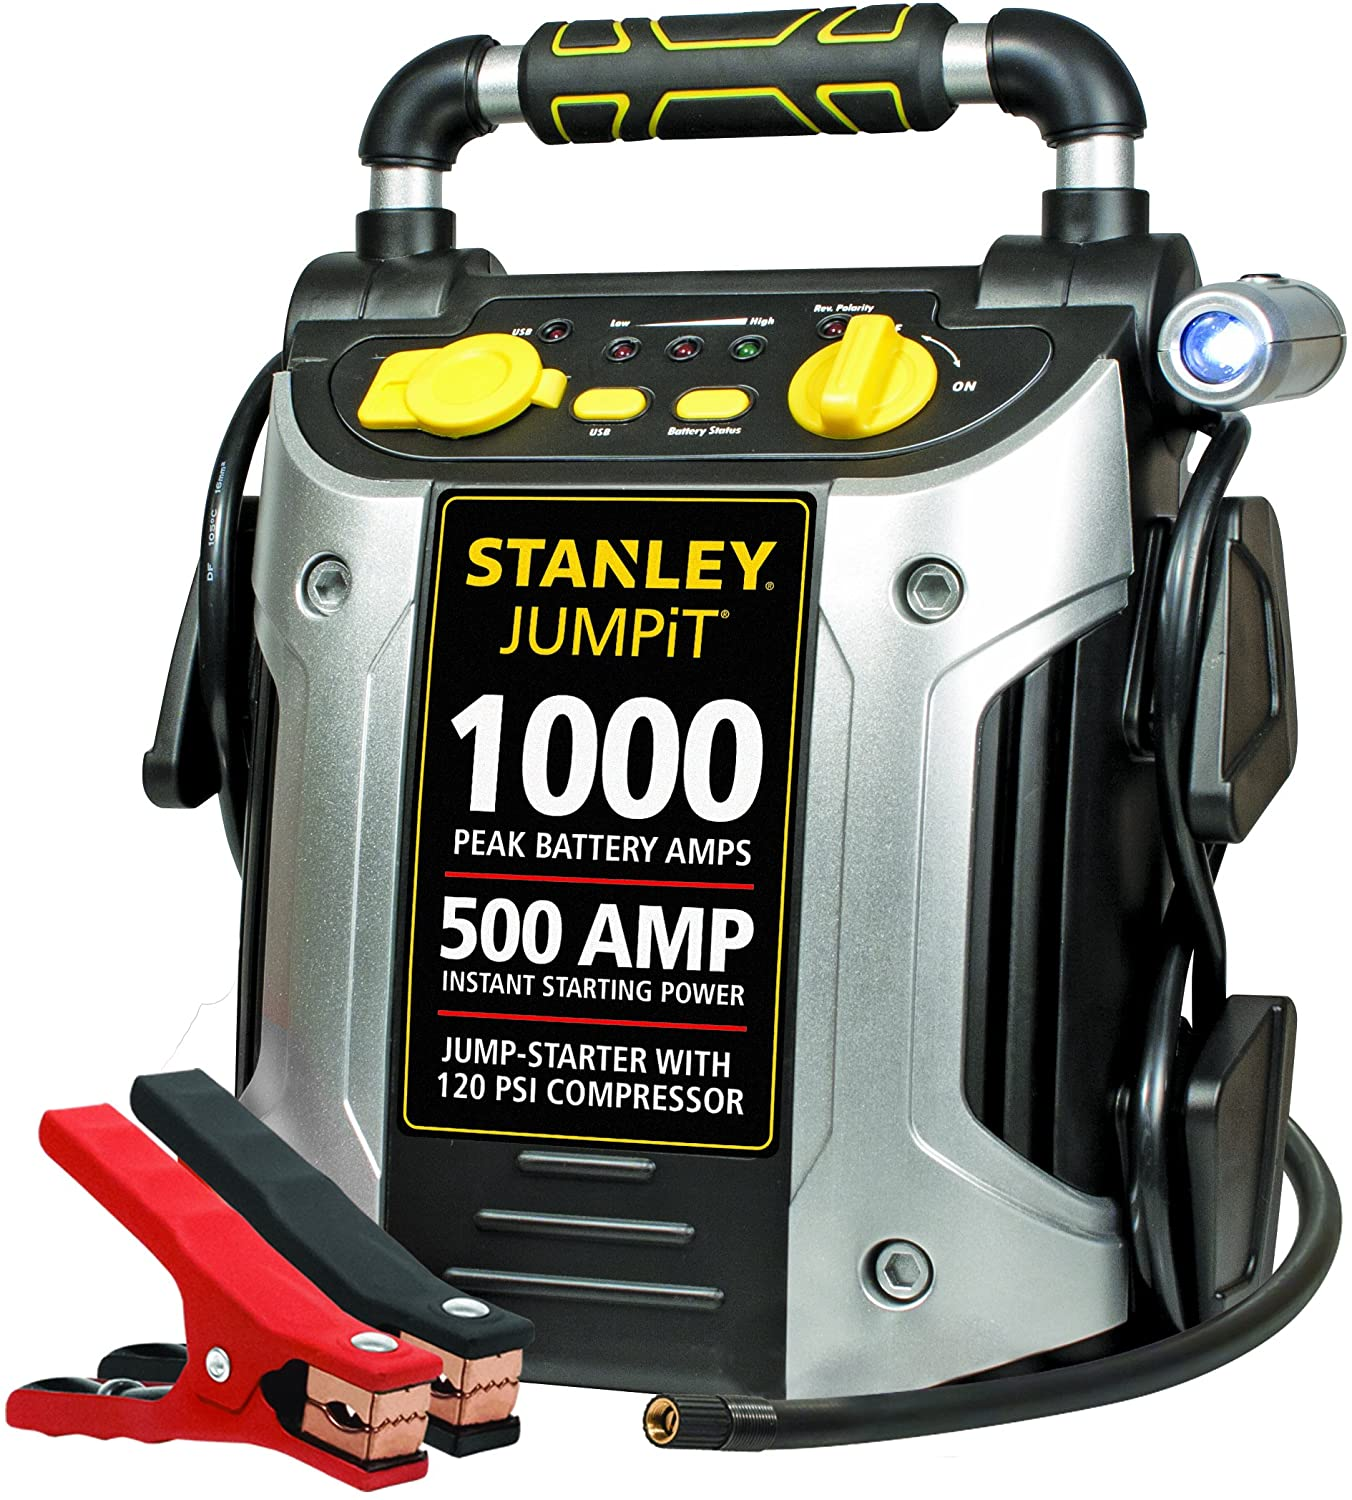 Stanley J5C09 JUMPiT Portable Power Station, car battery chargers